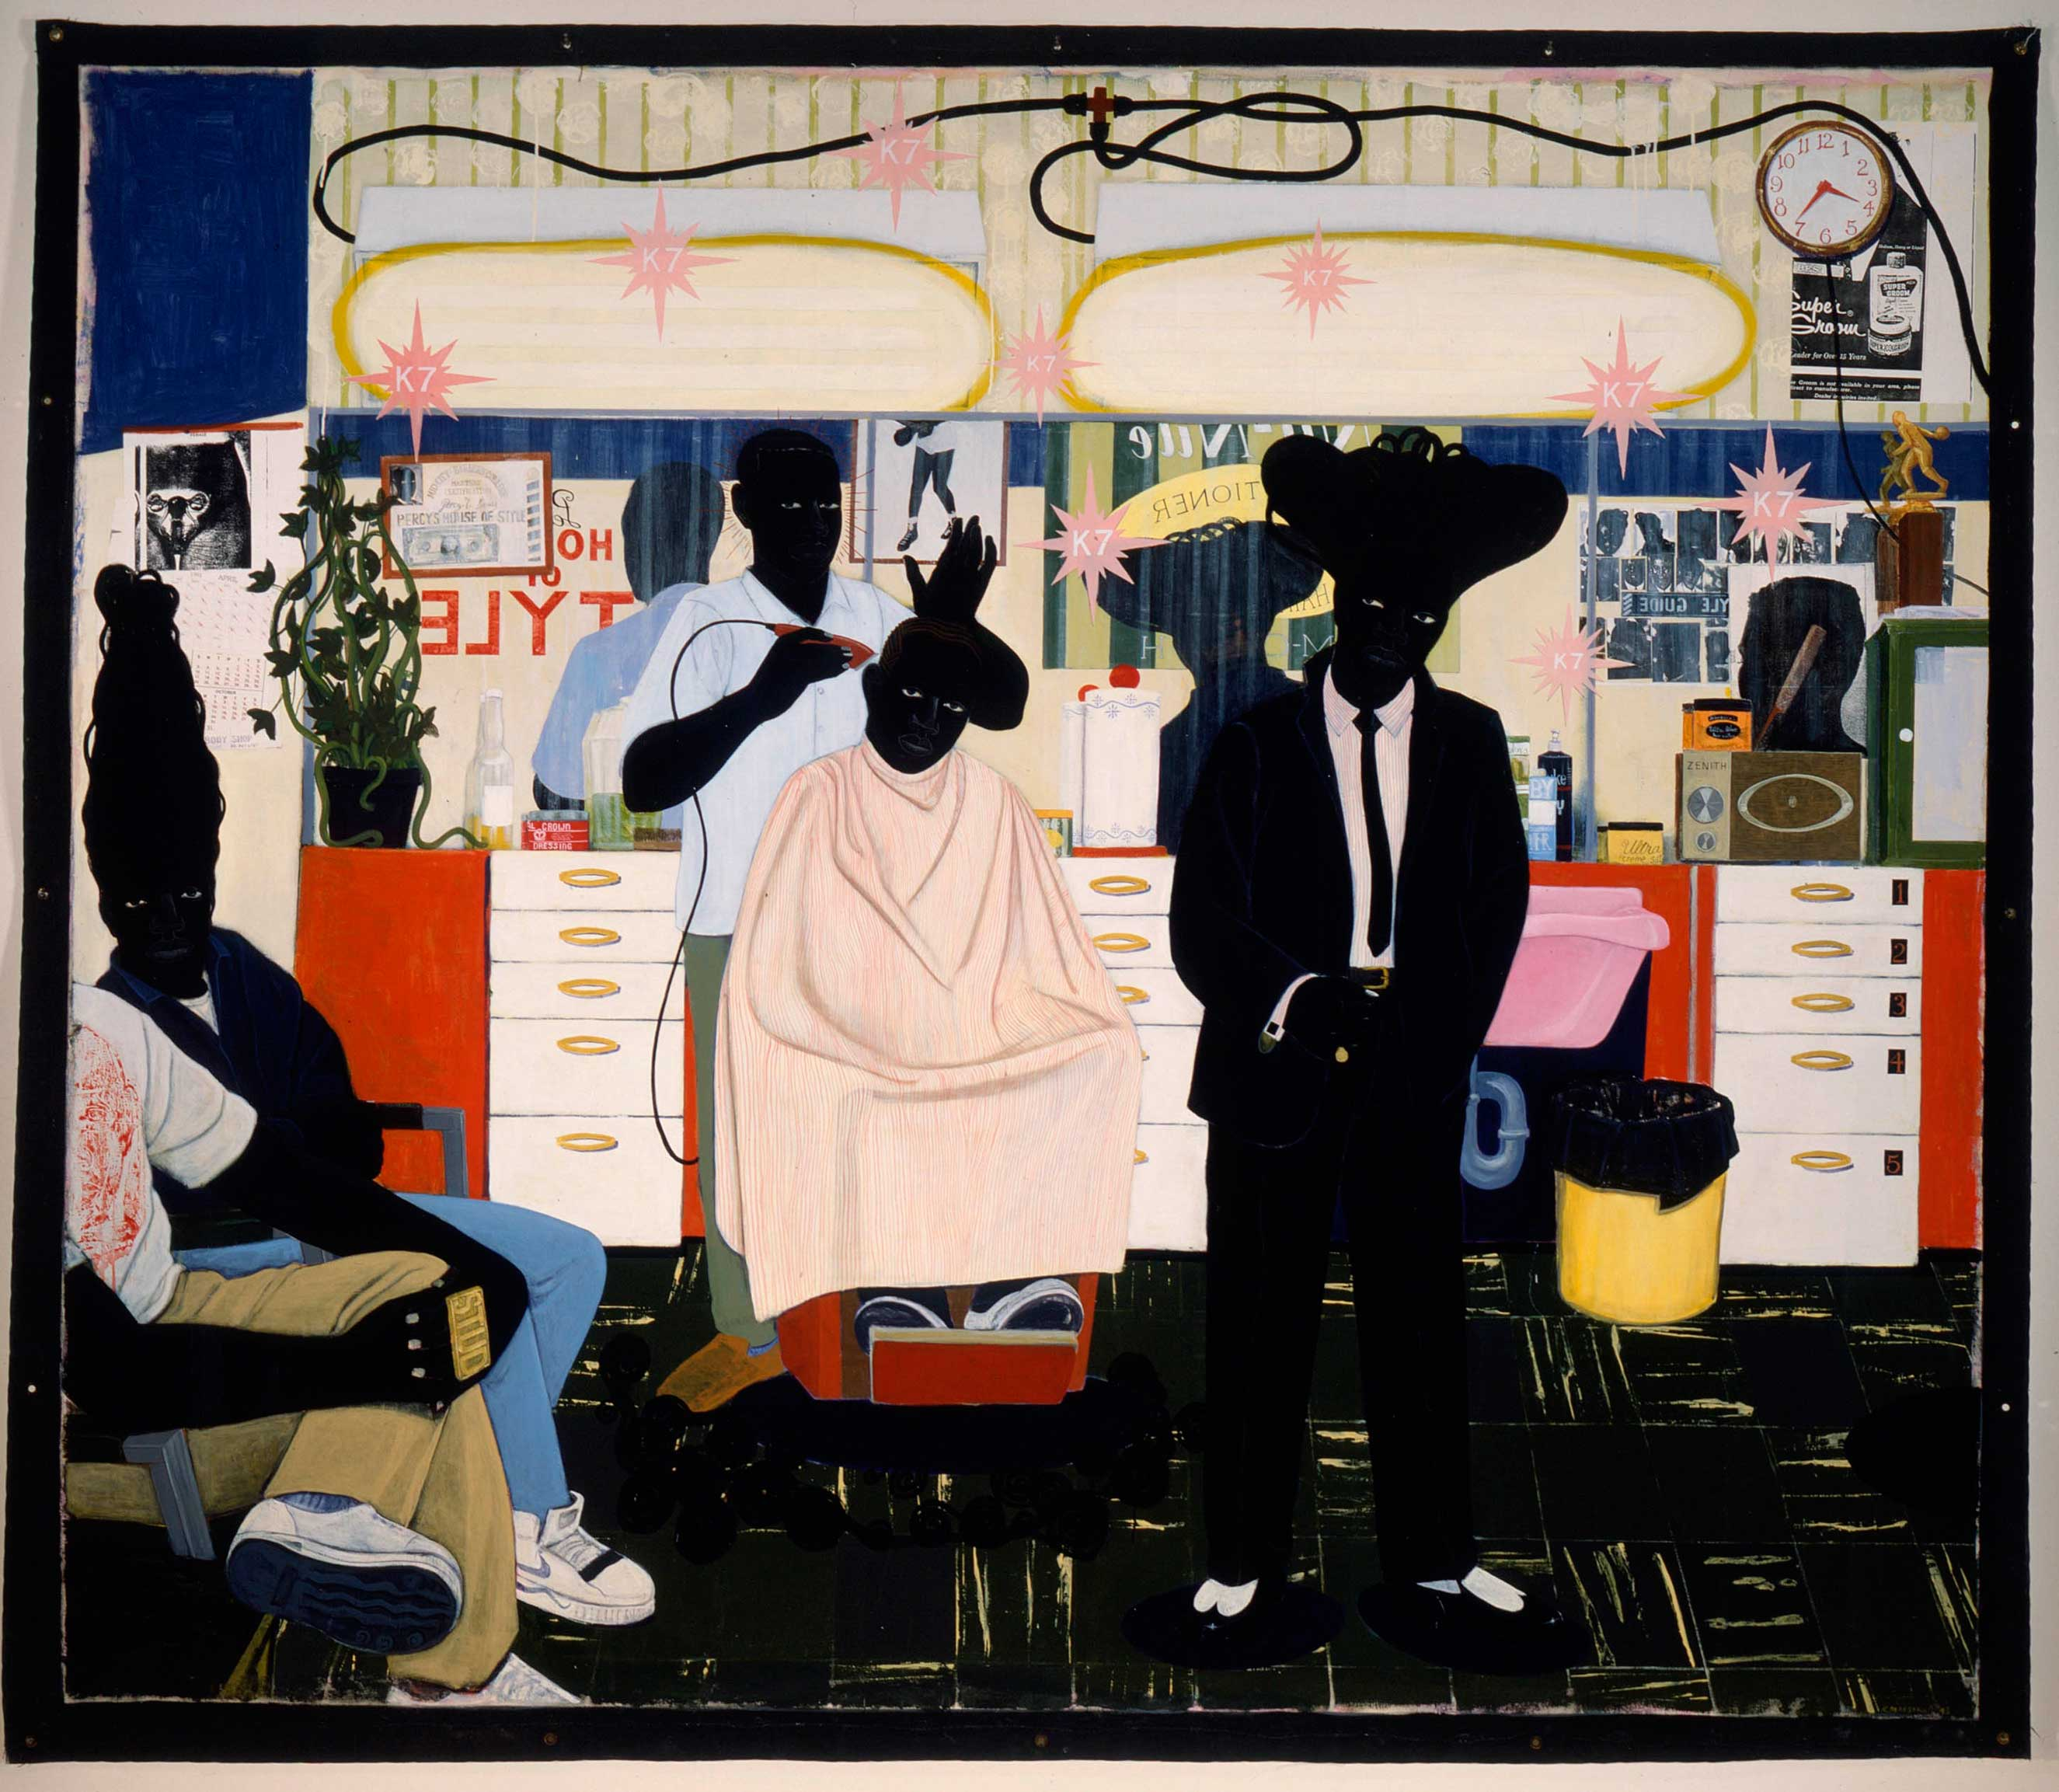 'De Style' by Kerry James Marshall